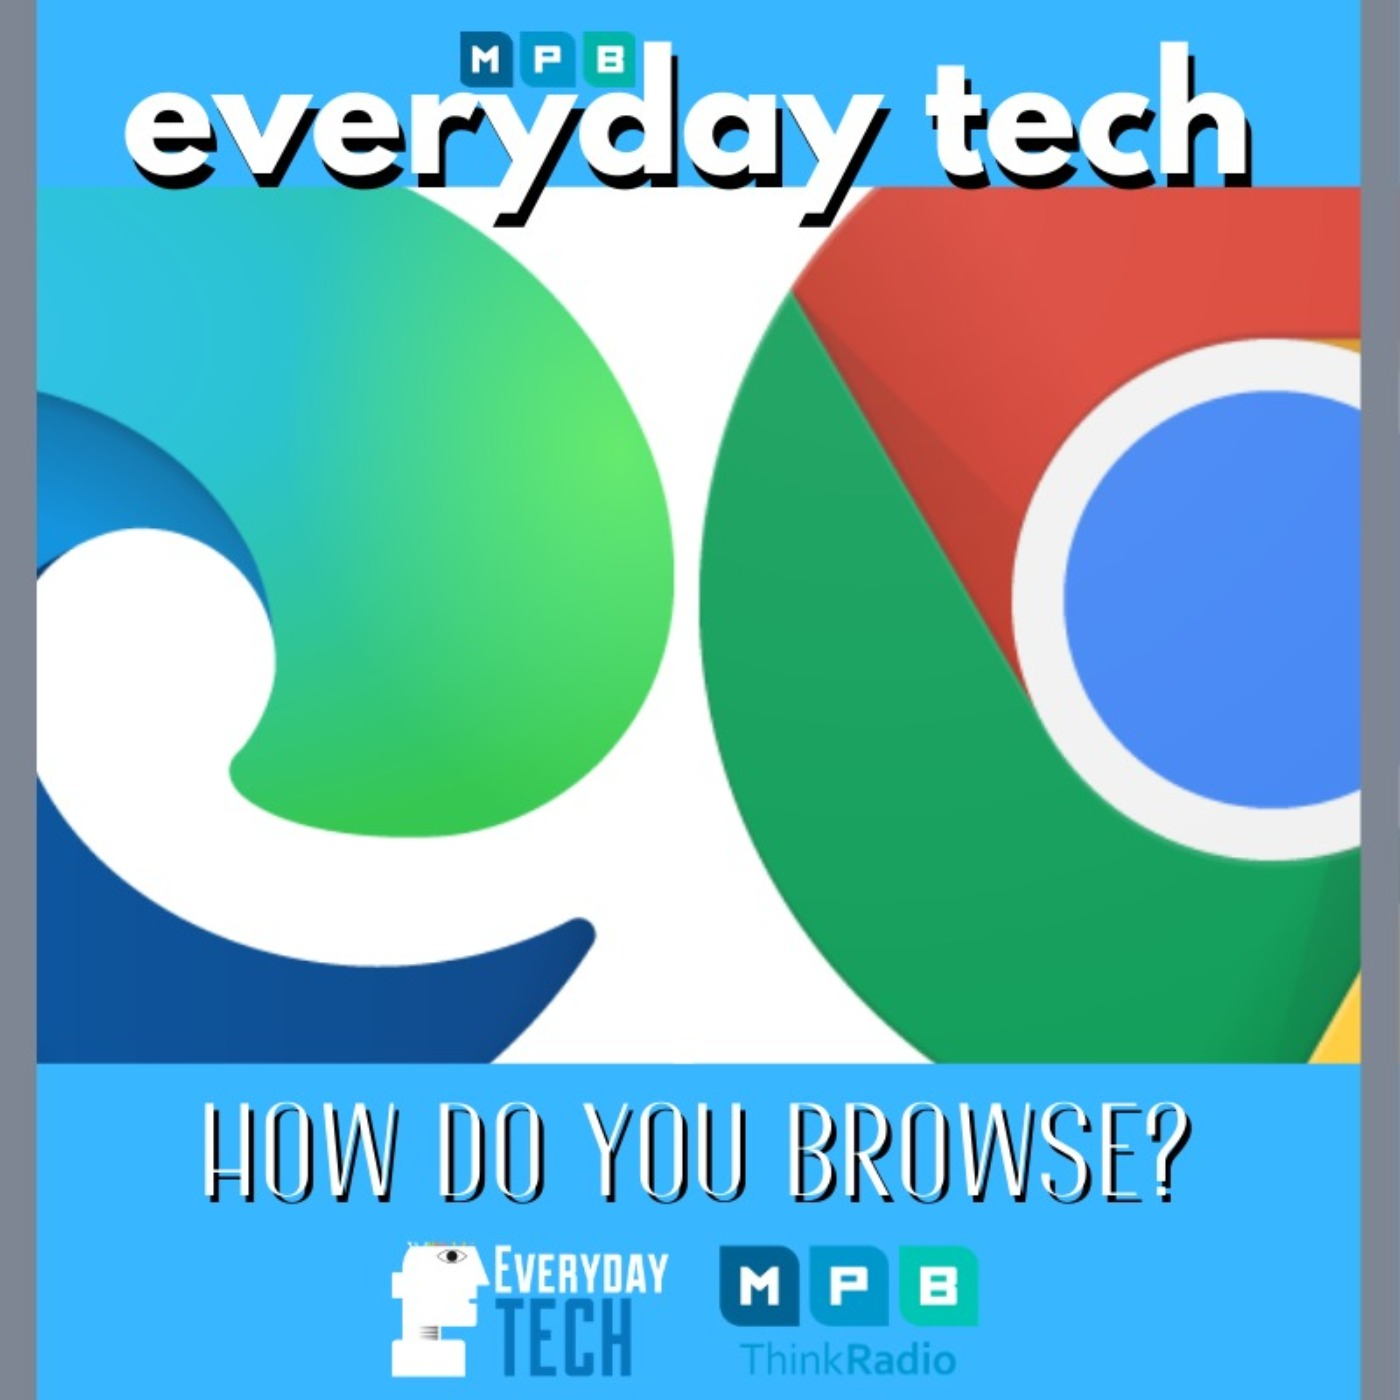 EVERYDAY TECH - Internet Browsers 2020